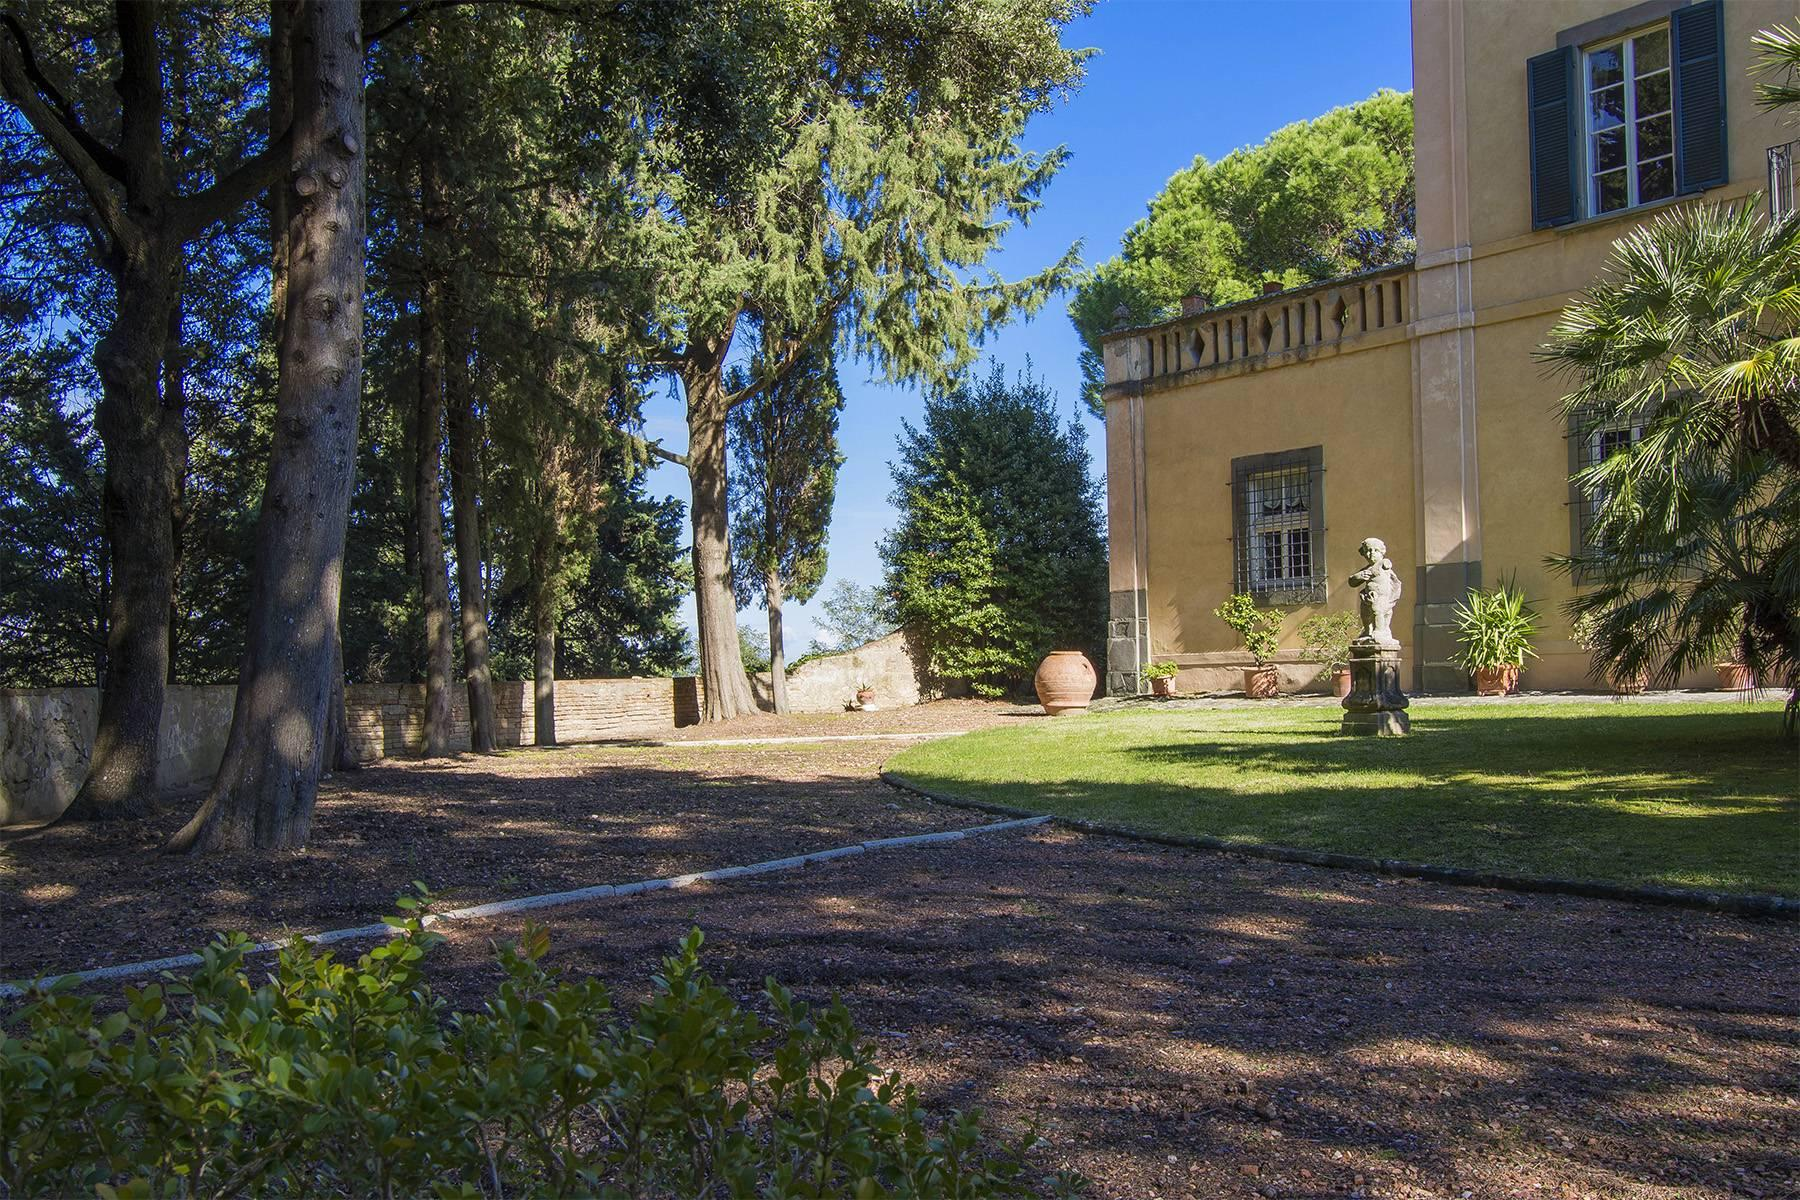 Charming Medicean Villa on the Tuscan hills - 36